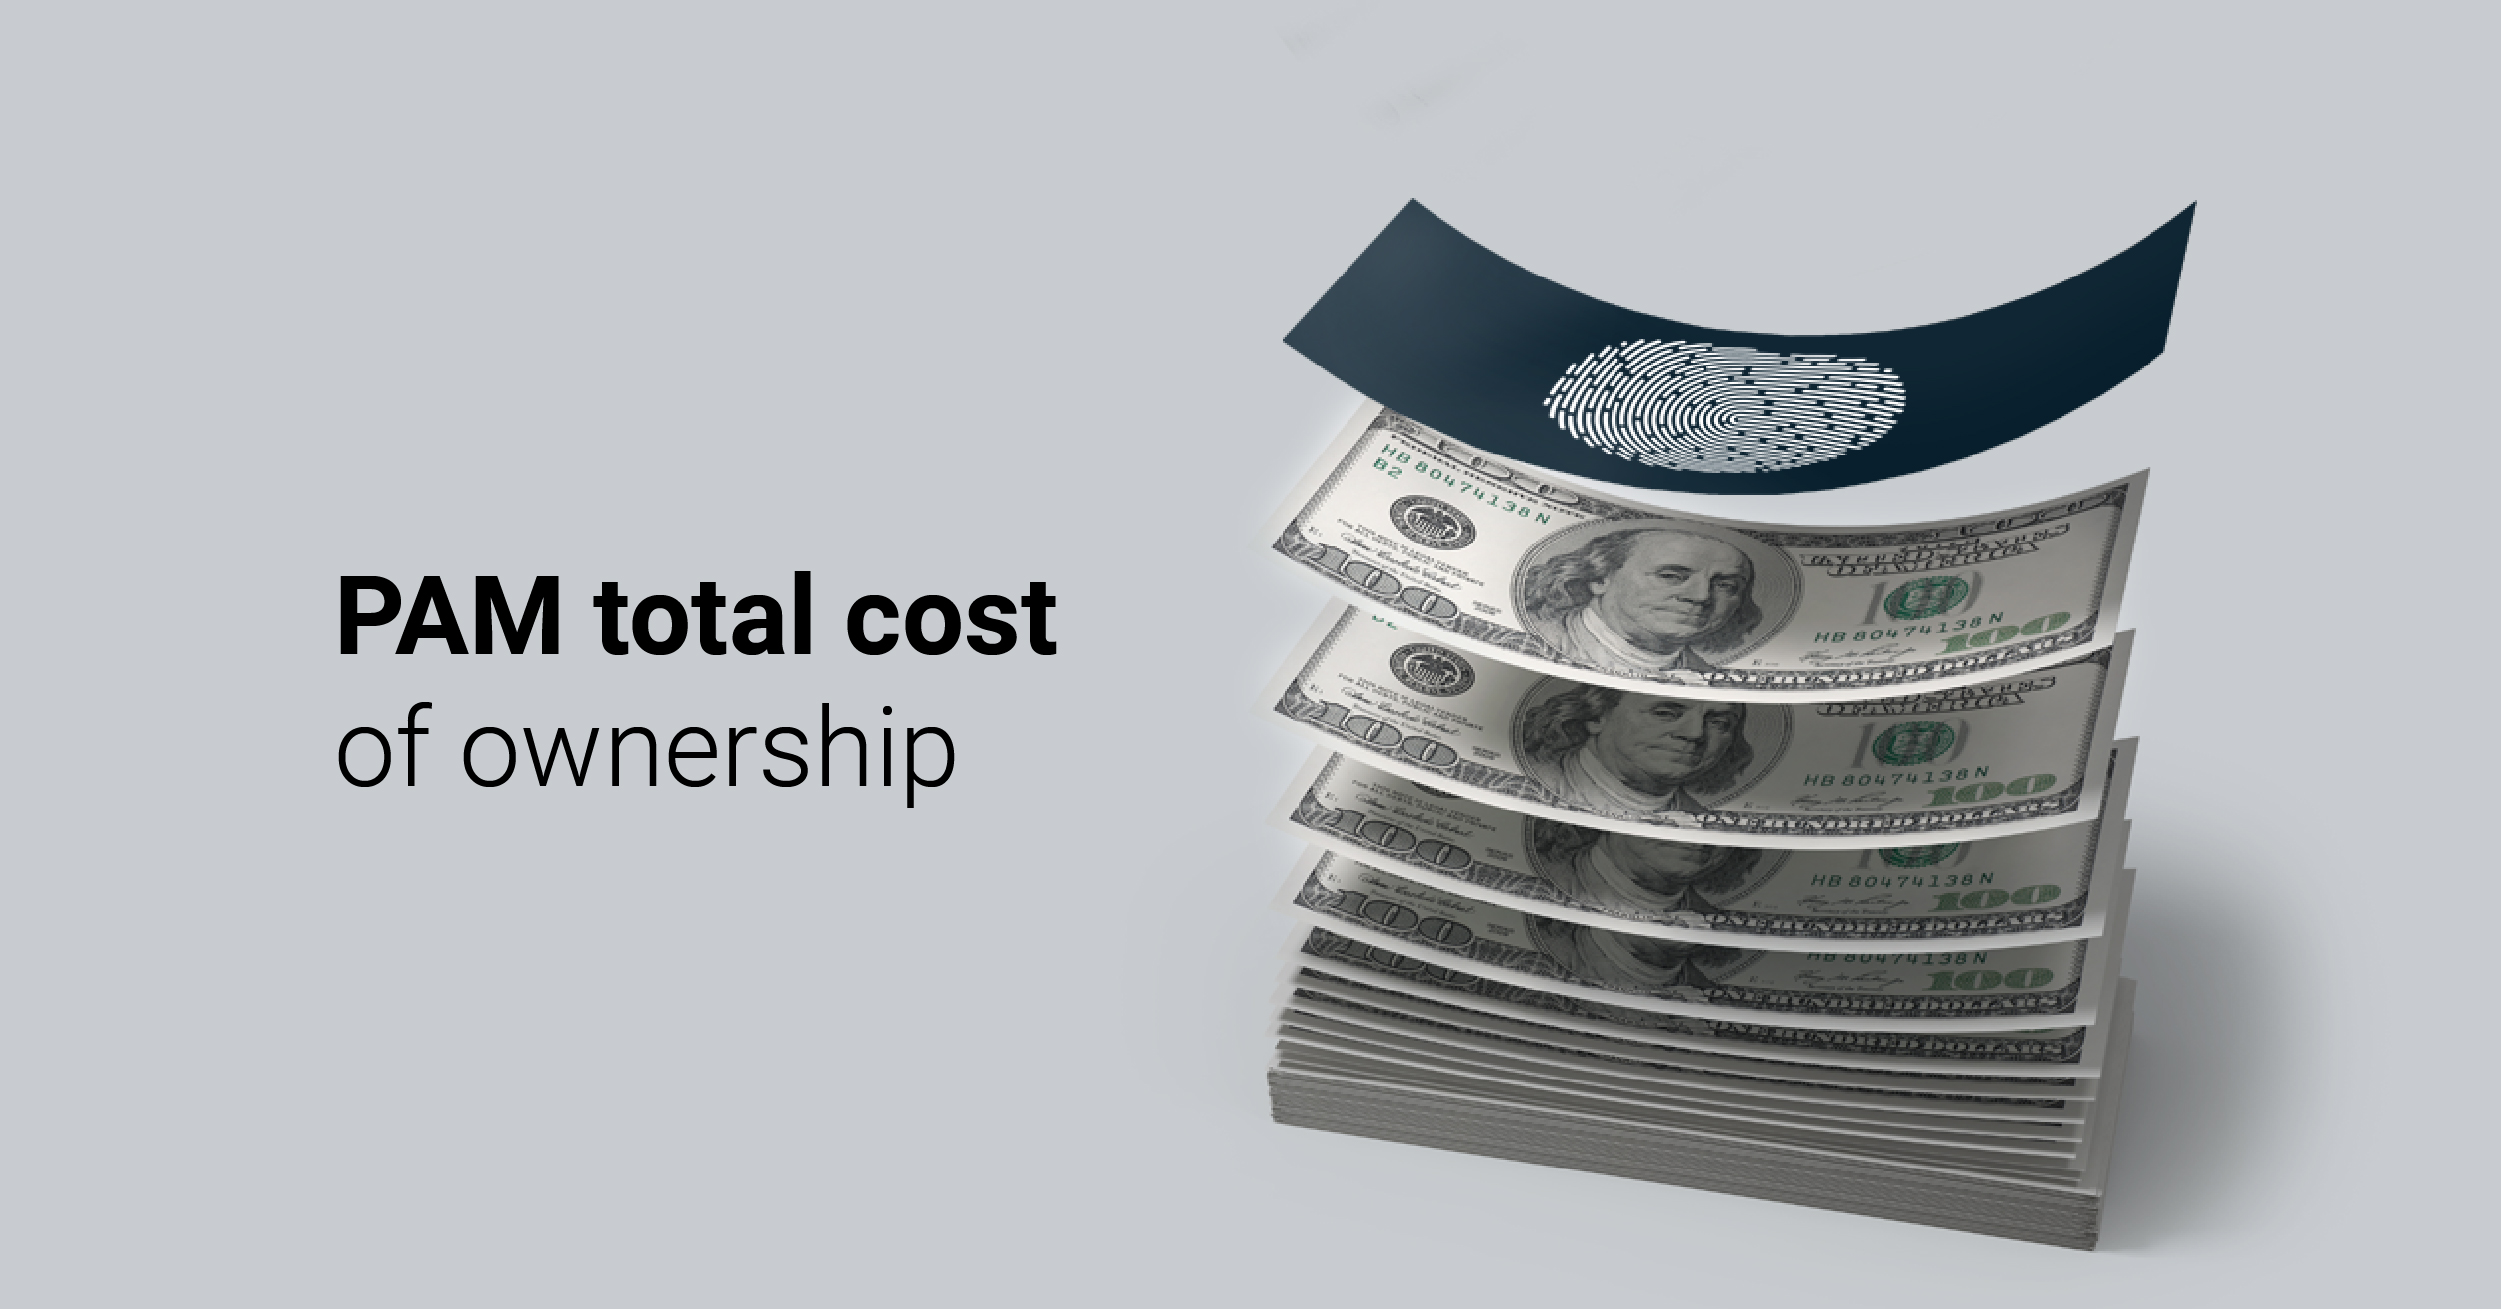 PAM TCO - Total cost of ownership